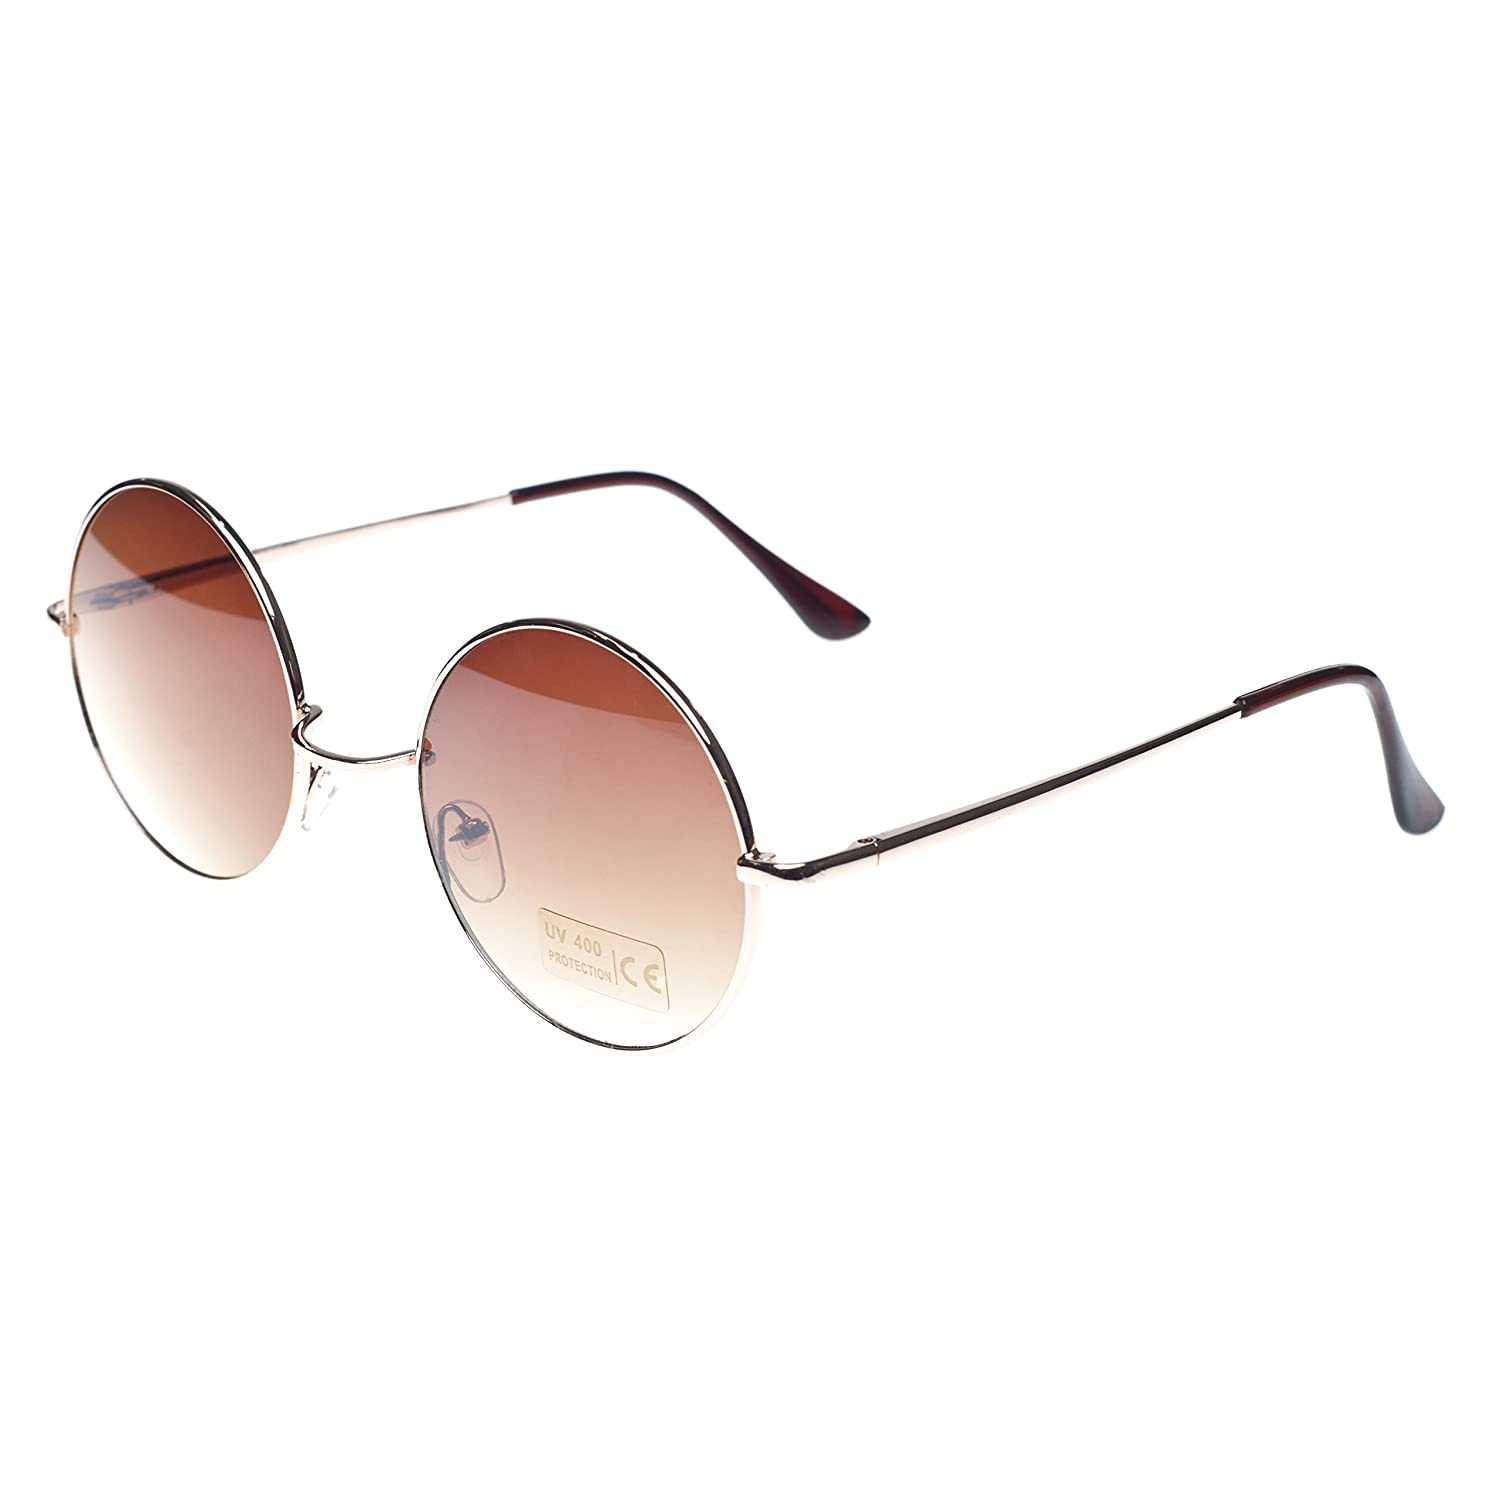 NEW Lennon UNISEX Damen Herren Retro Sonnenbrille UV400 Protection